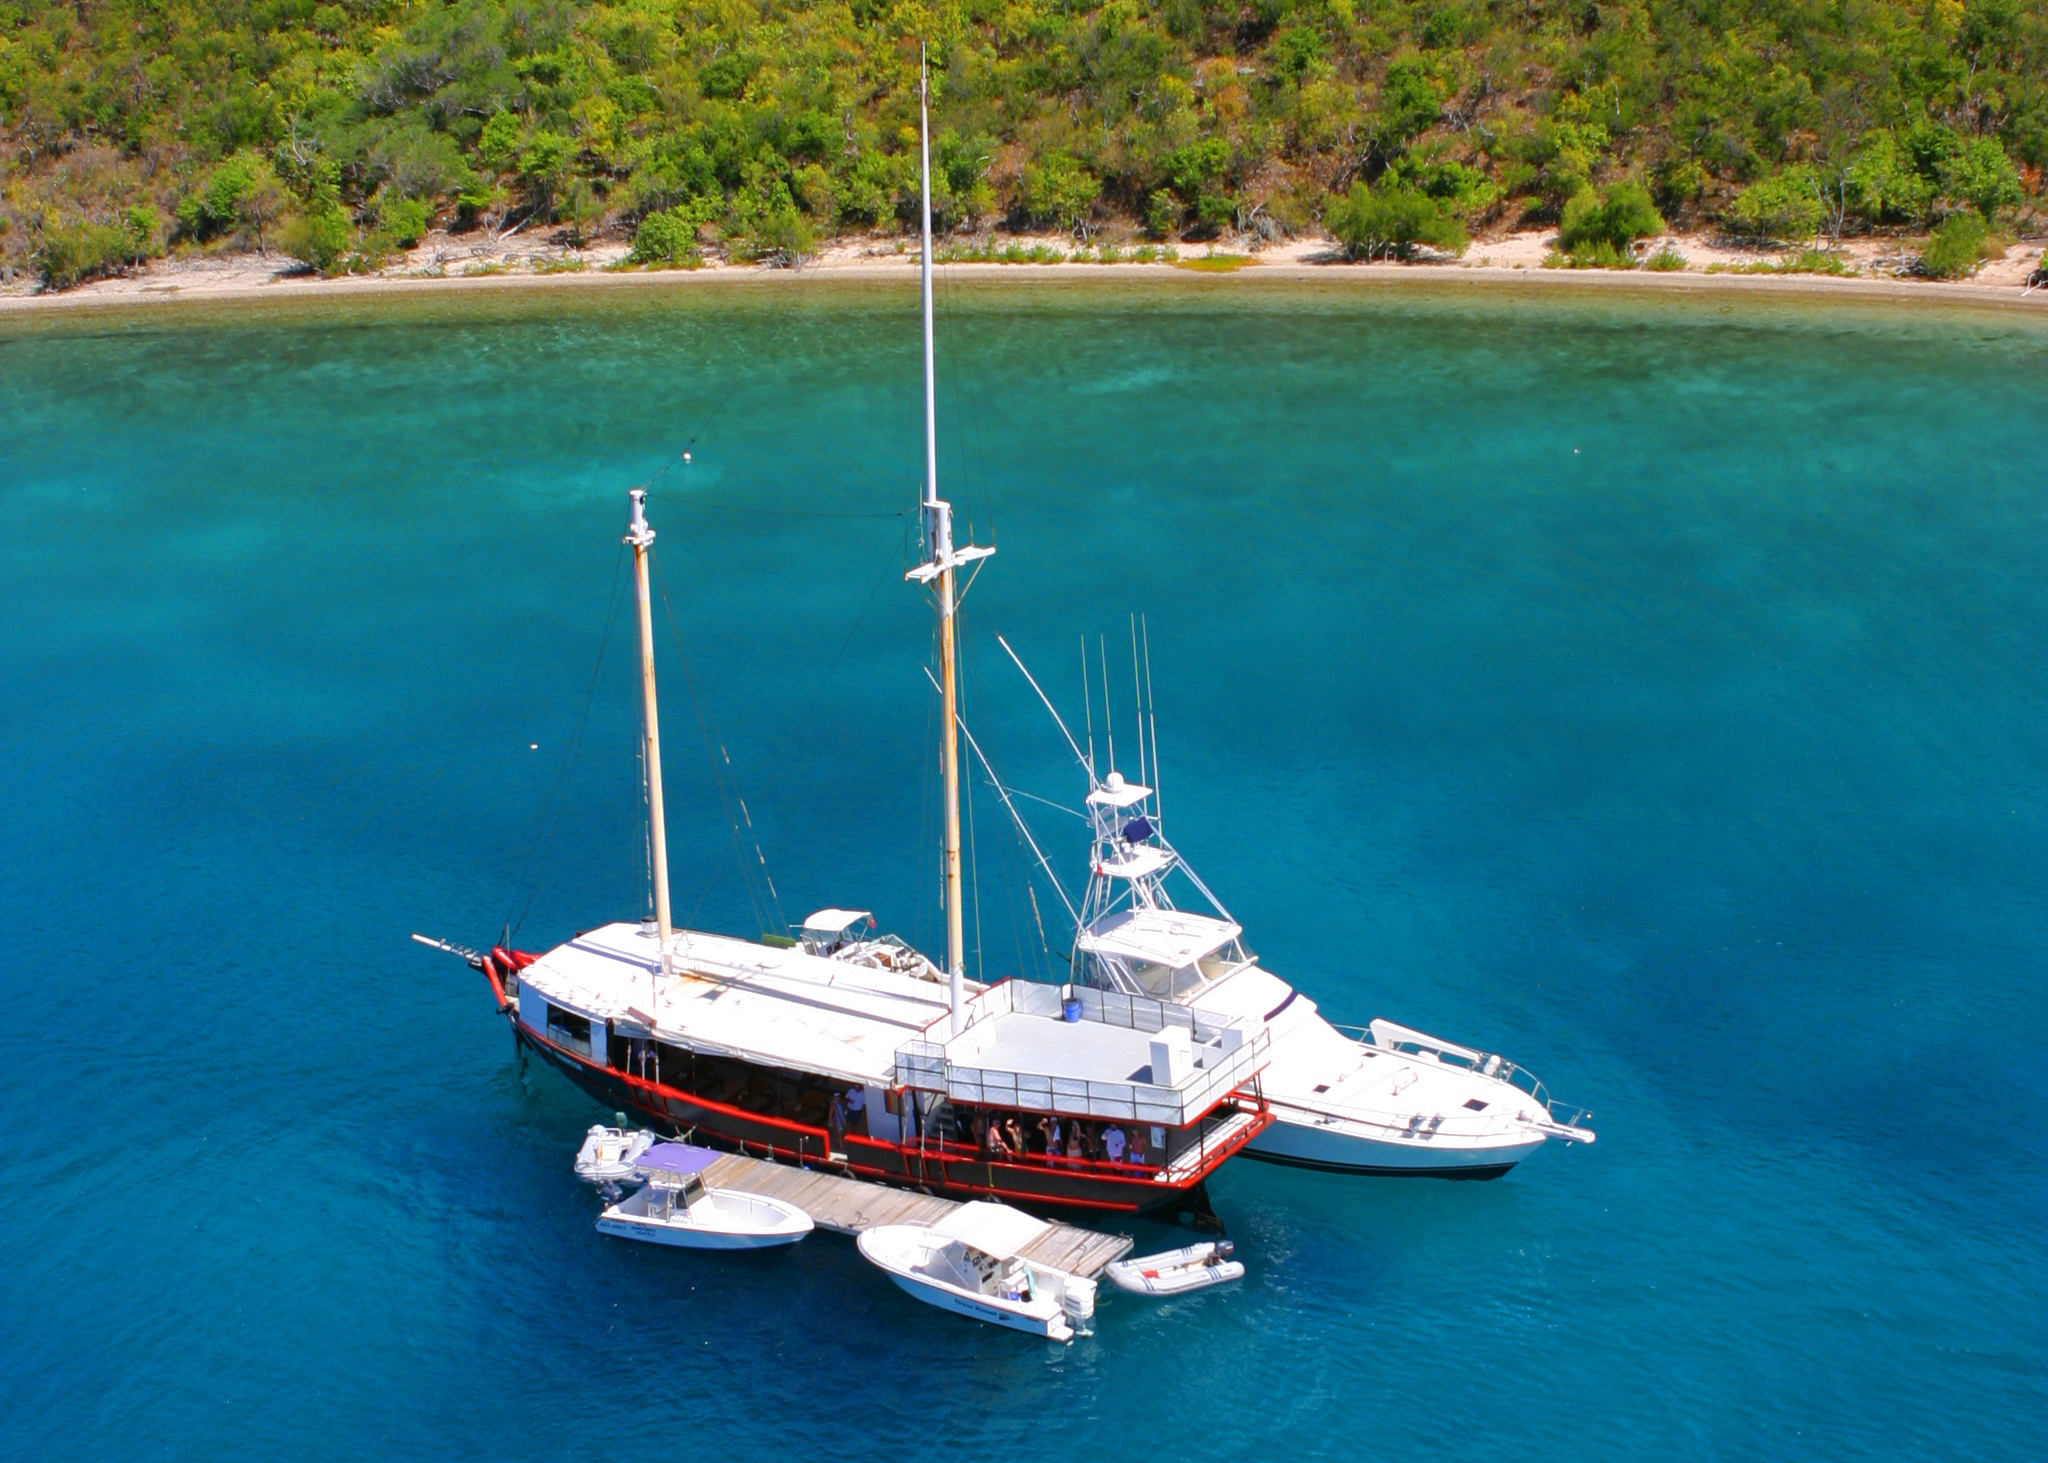 BVI willy t boat from above